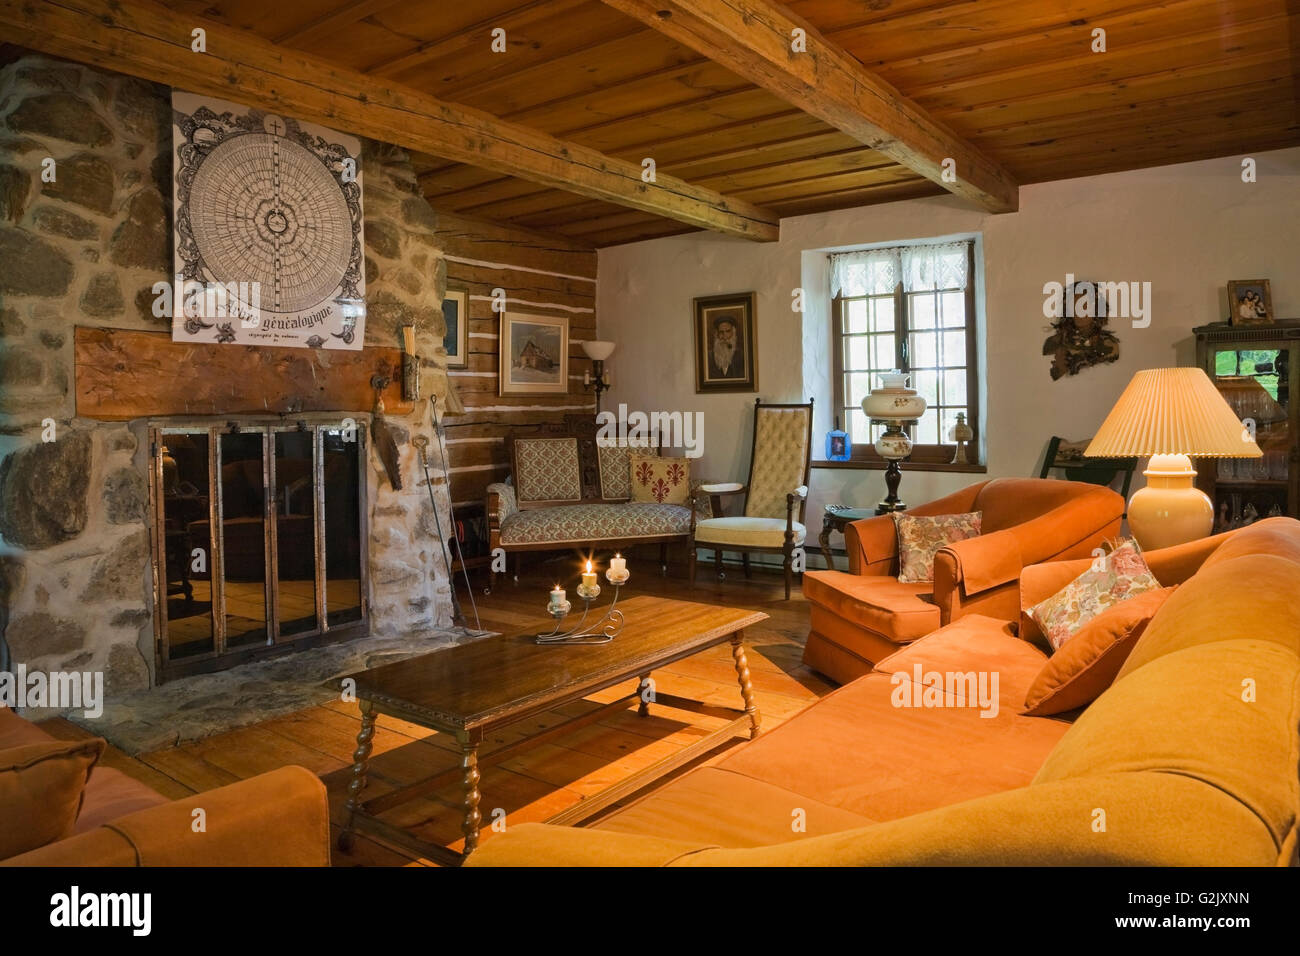 orange upholstered sofa chairs stone fireplace in living room